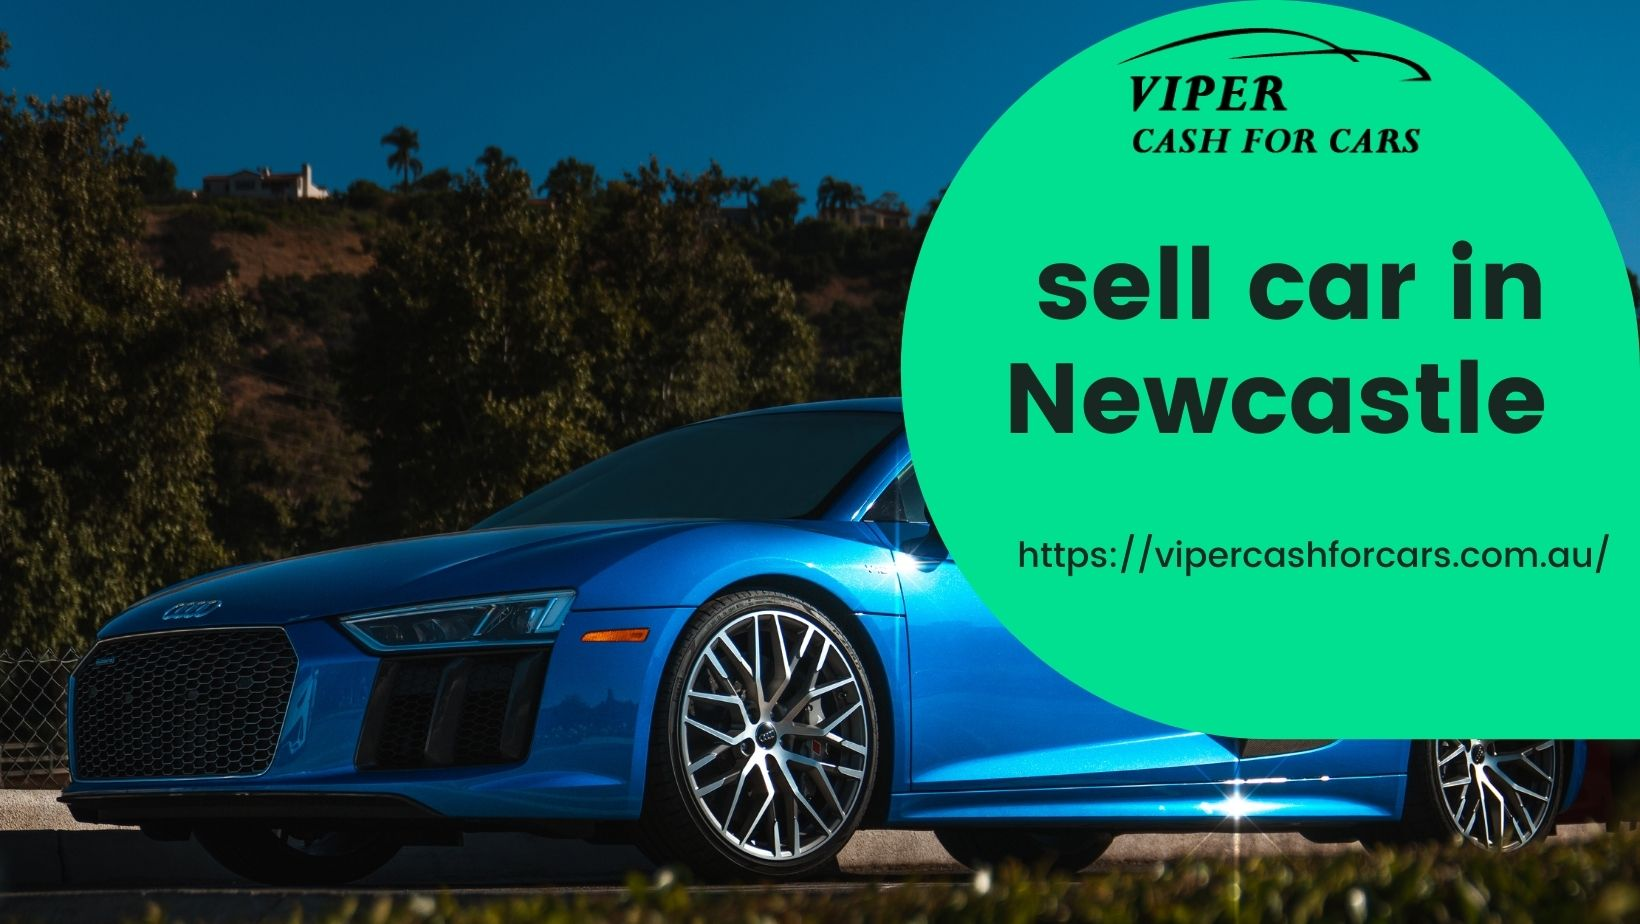 Viper cash for cars- Leading place to sell a car in Newcastle